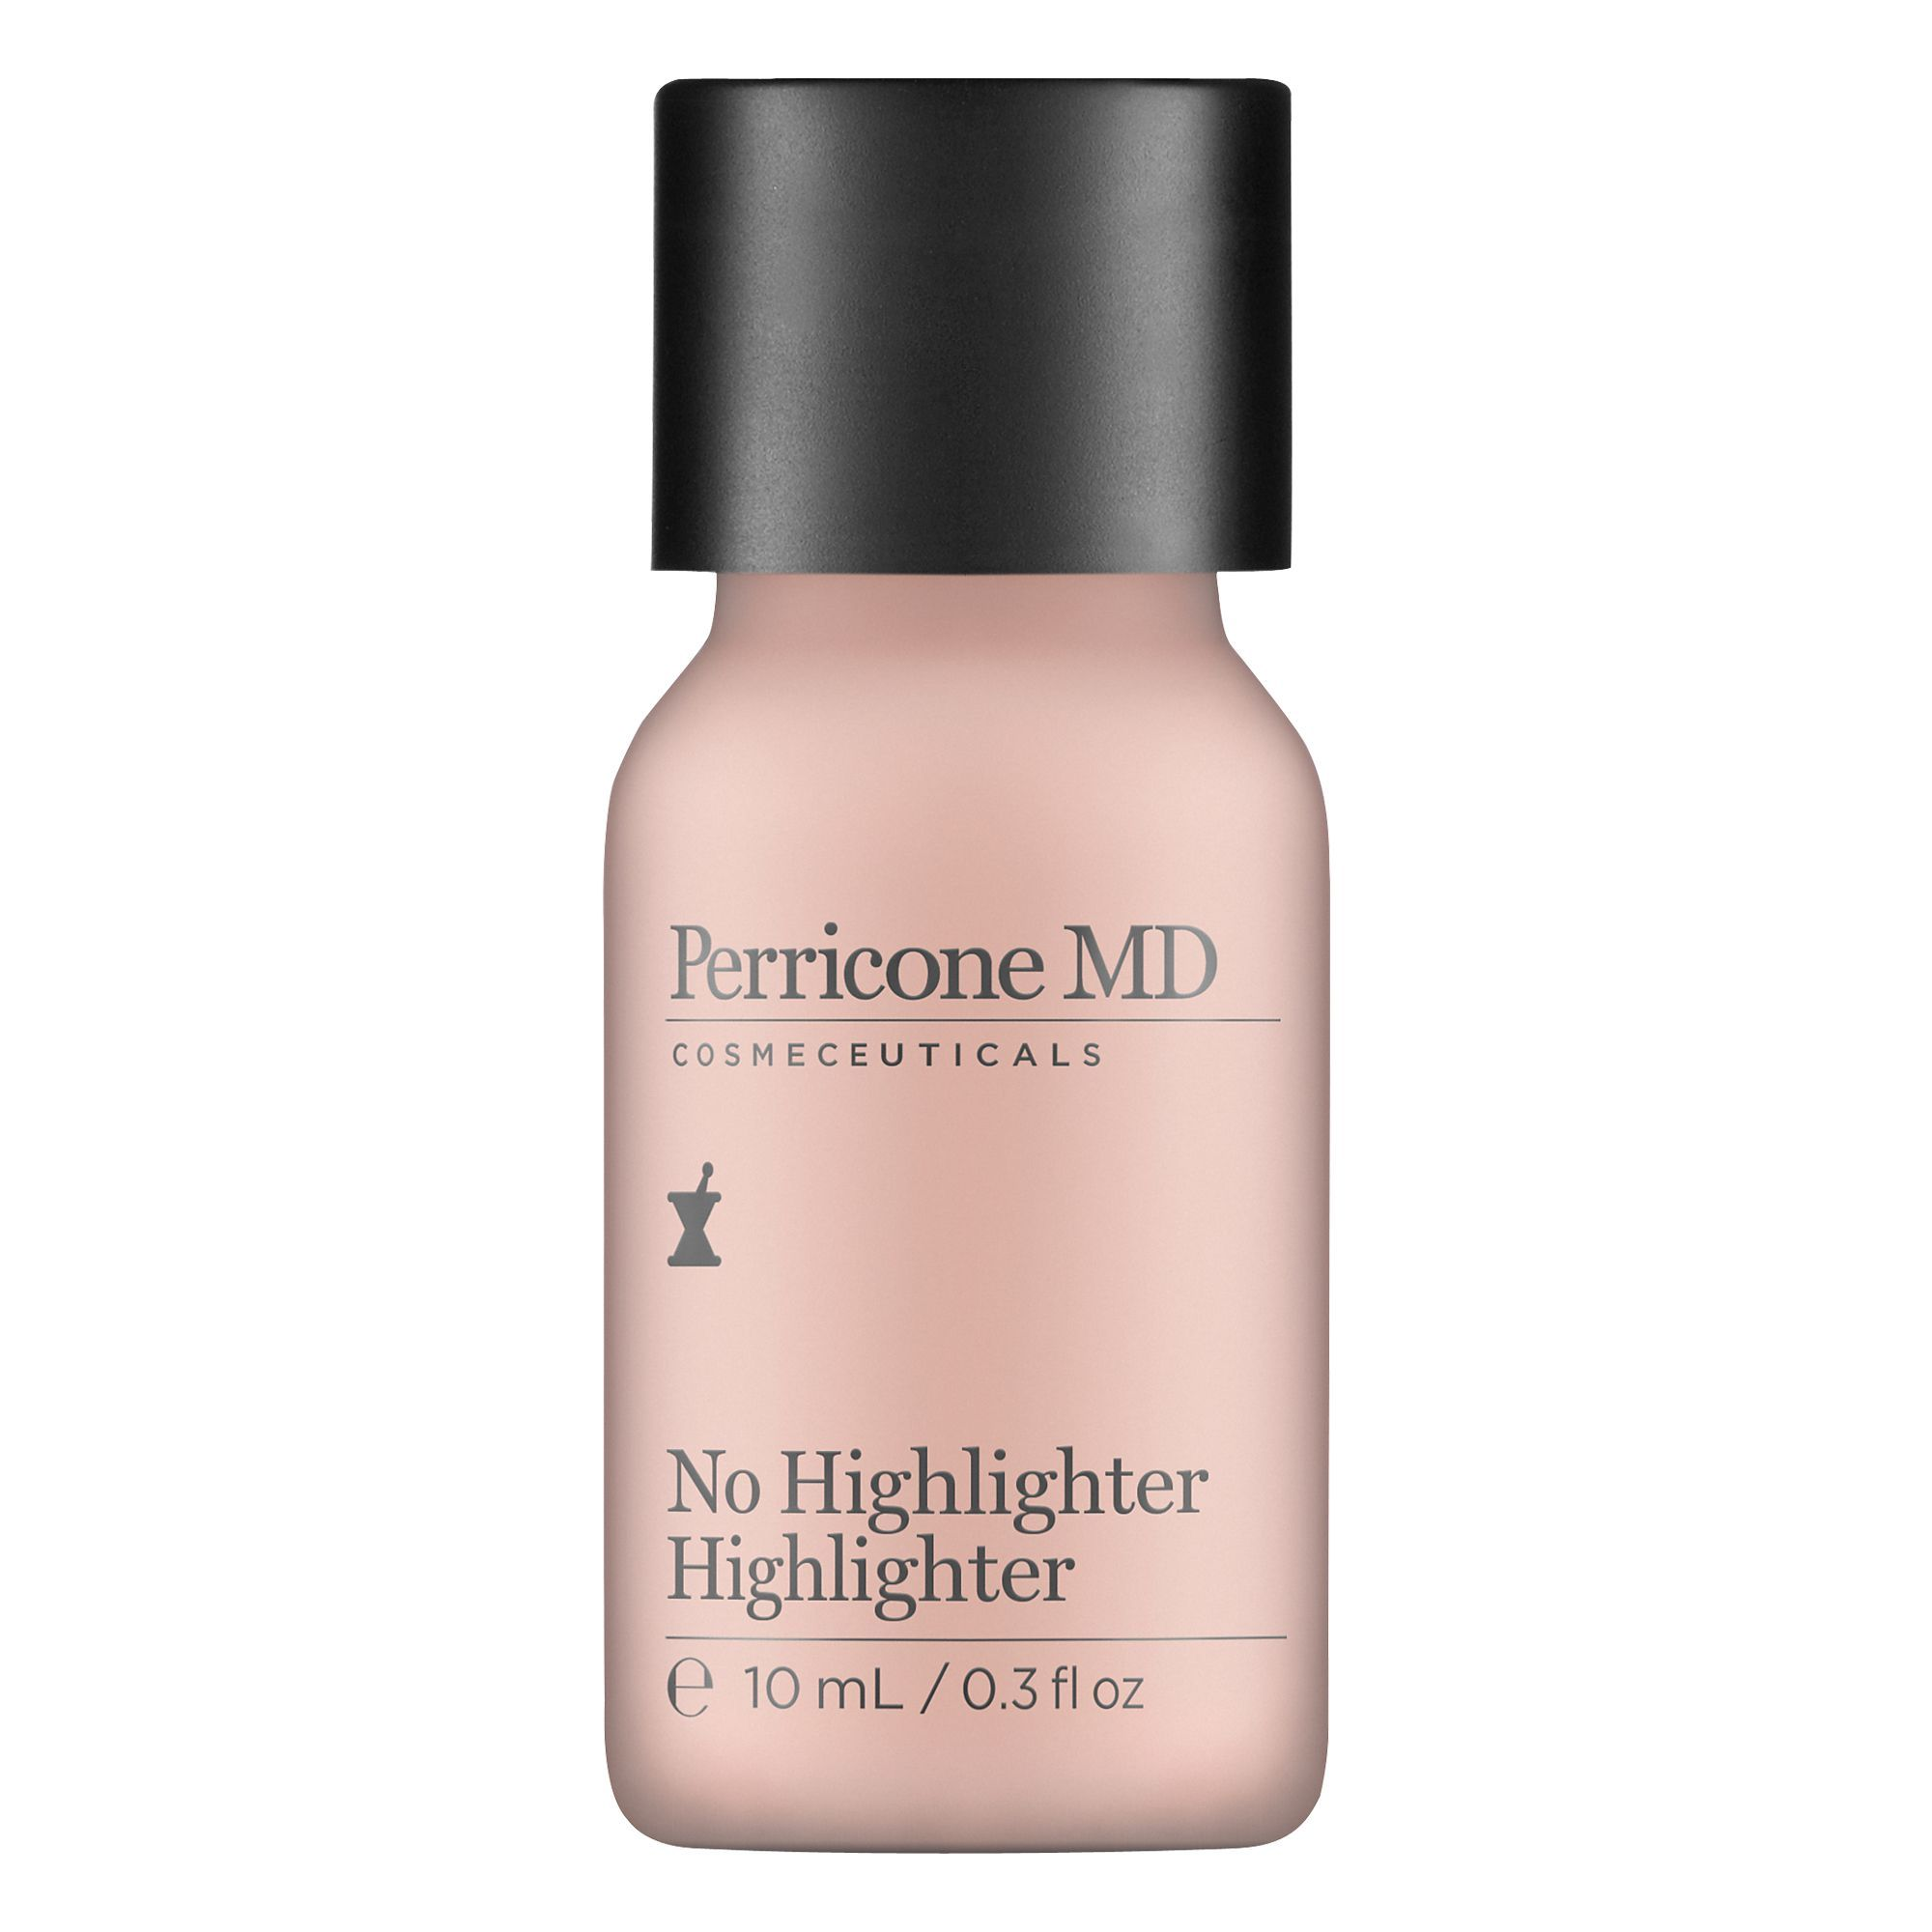 Perricone MD No Makeup Highlighter Eyebrows cosmetics